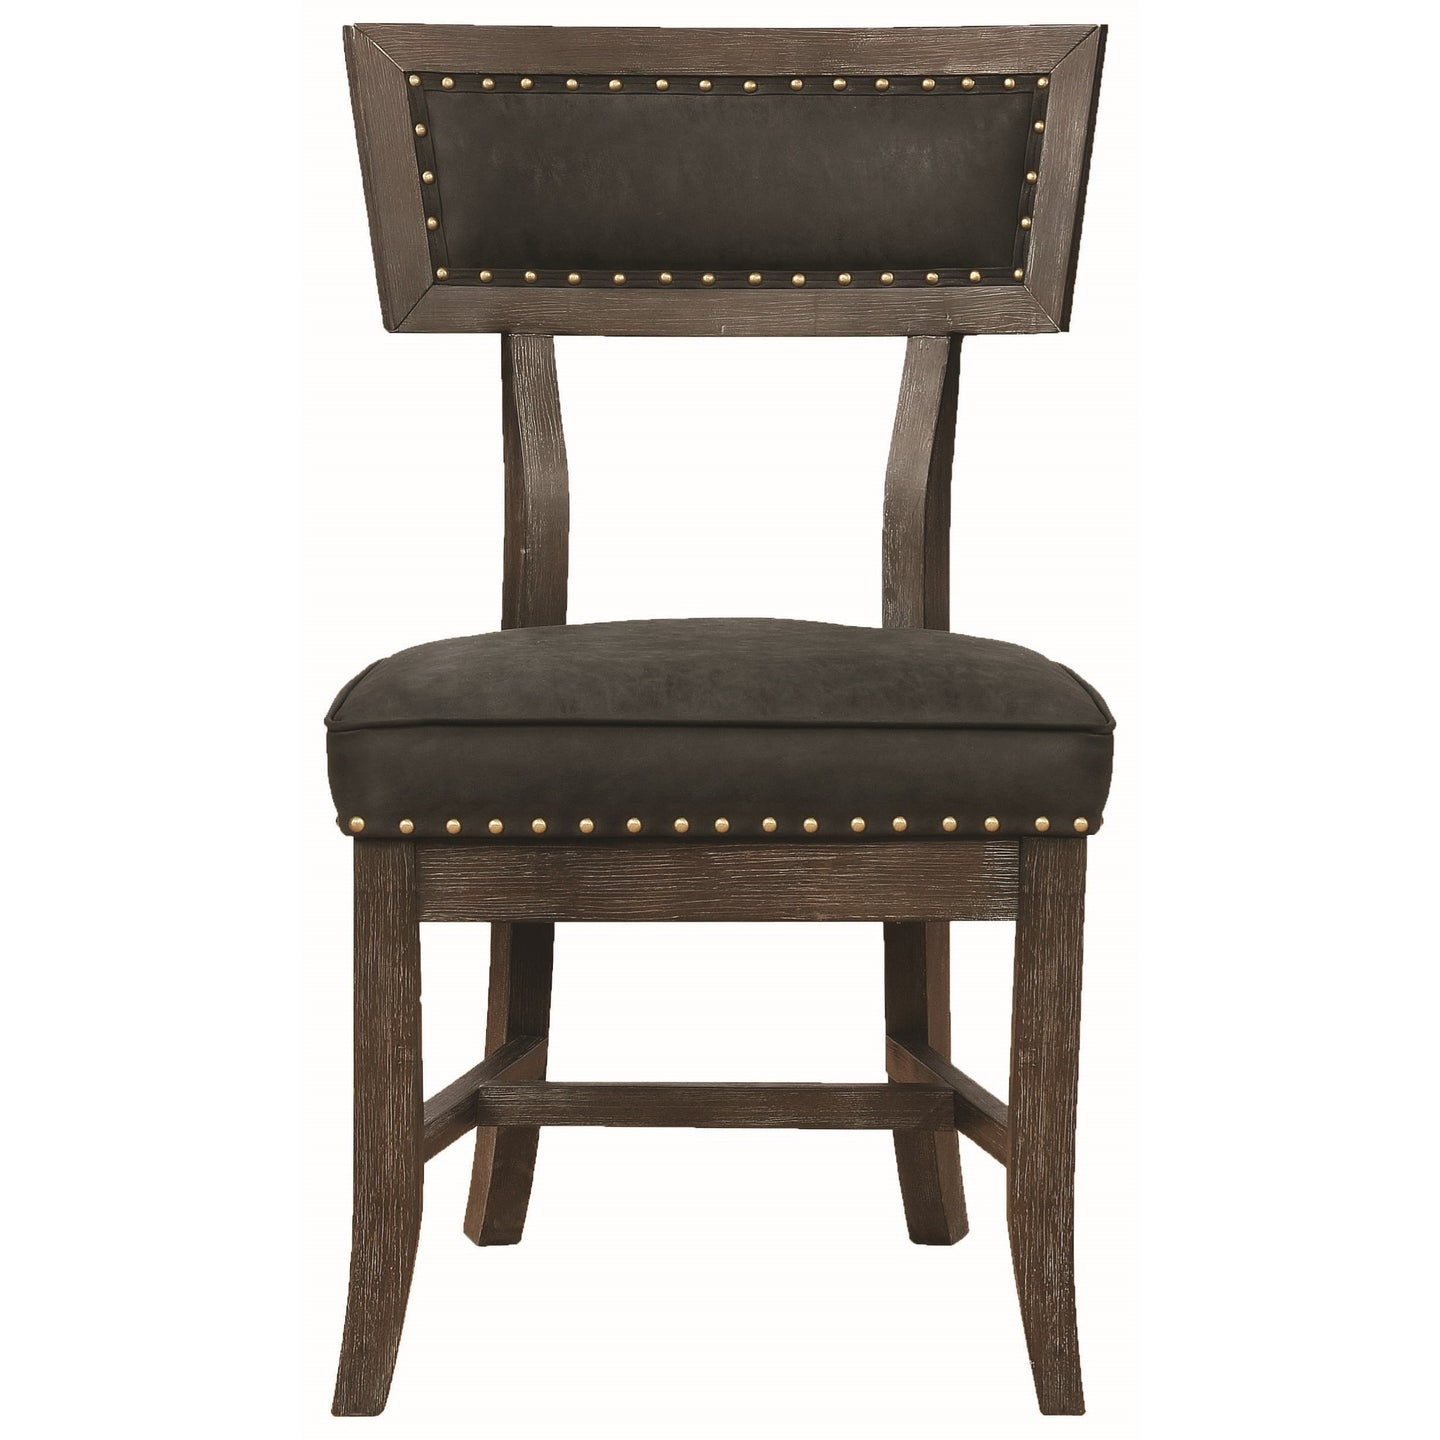 Mayberry Rustic Wood Finish Dining Chair